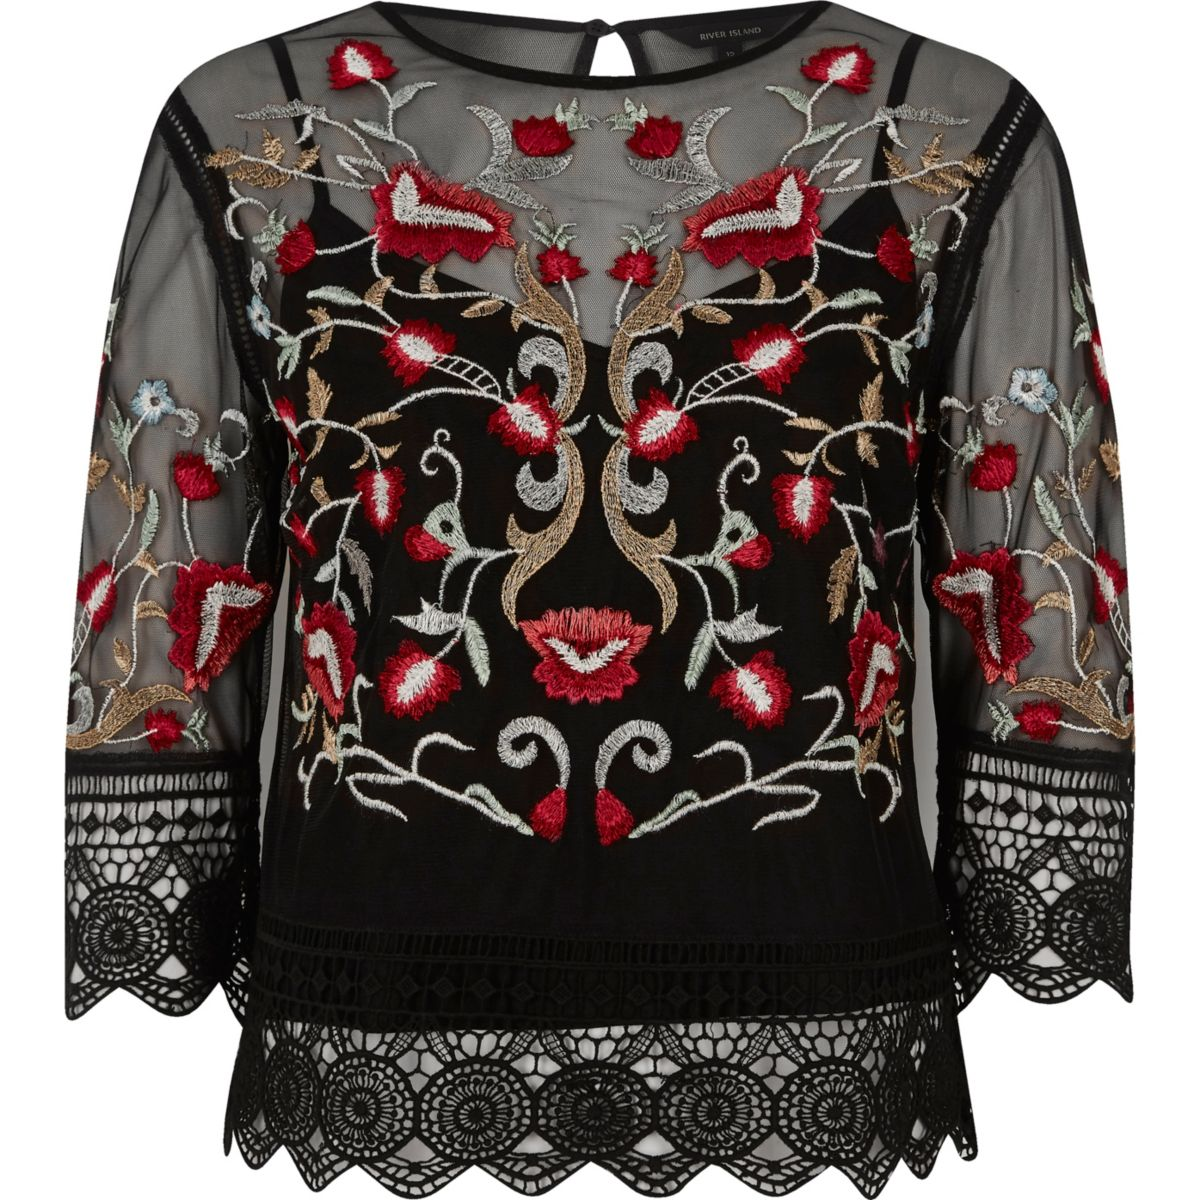 Black mesh floral embroidered lace trim top